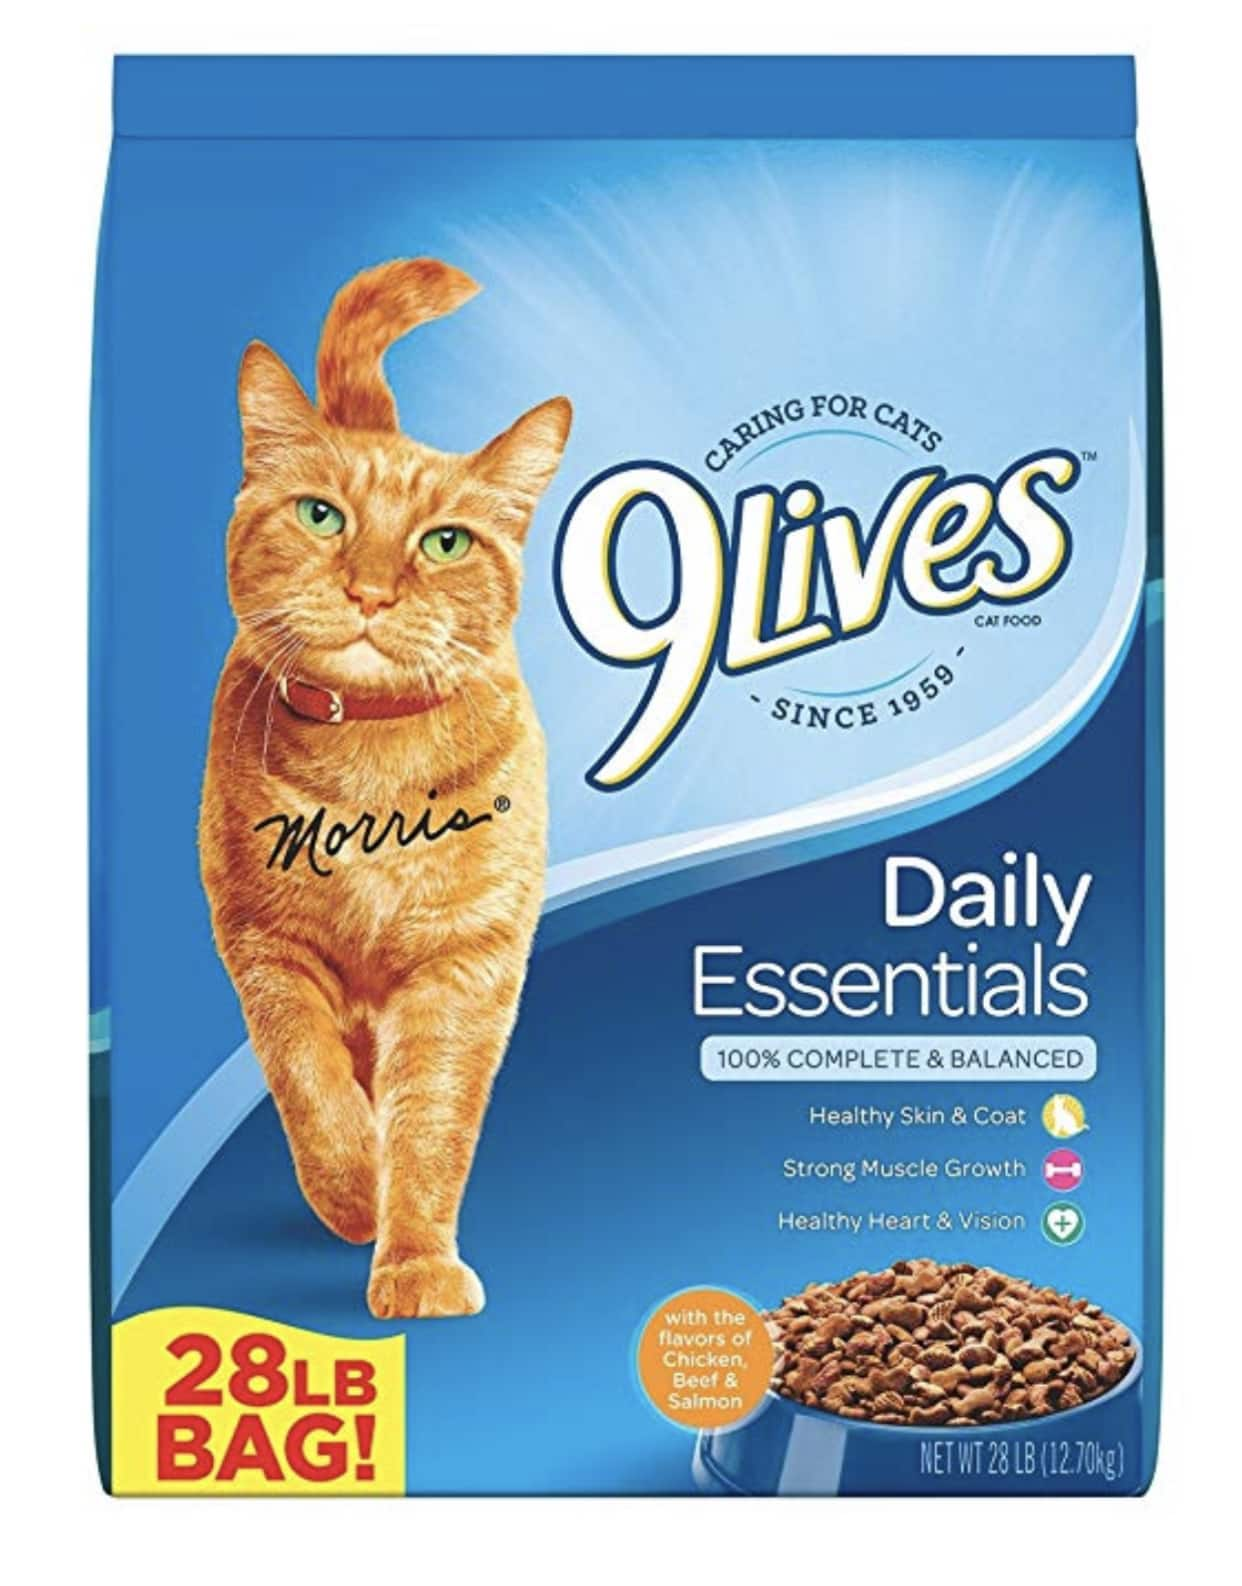 ($7.08) 9Lives Dry Cat Food 28LB For $7.08 + tax S&S YYMV